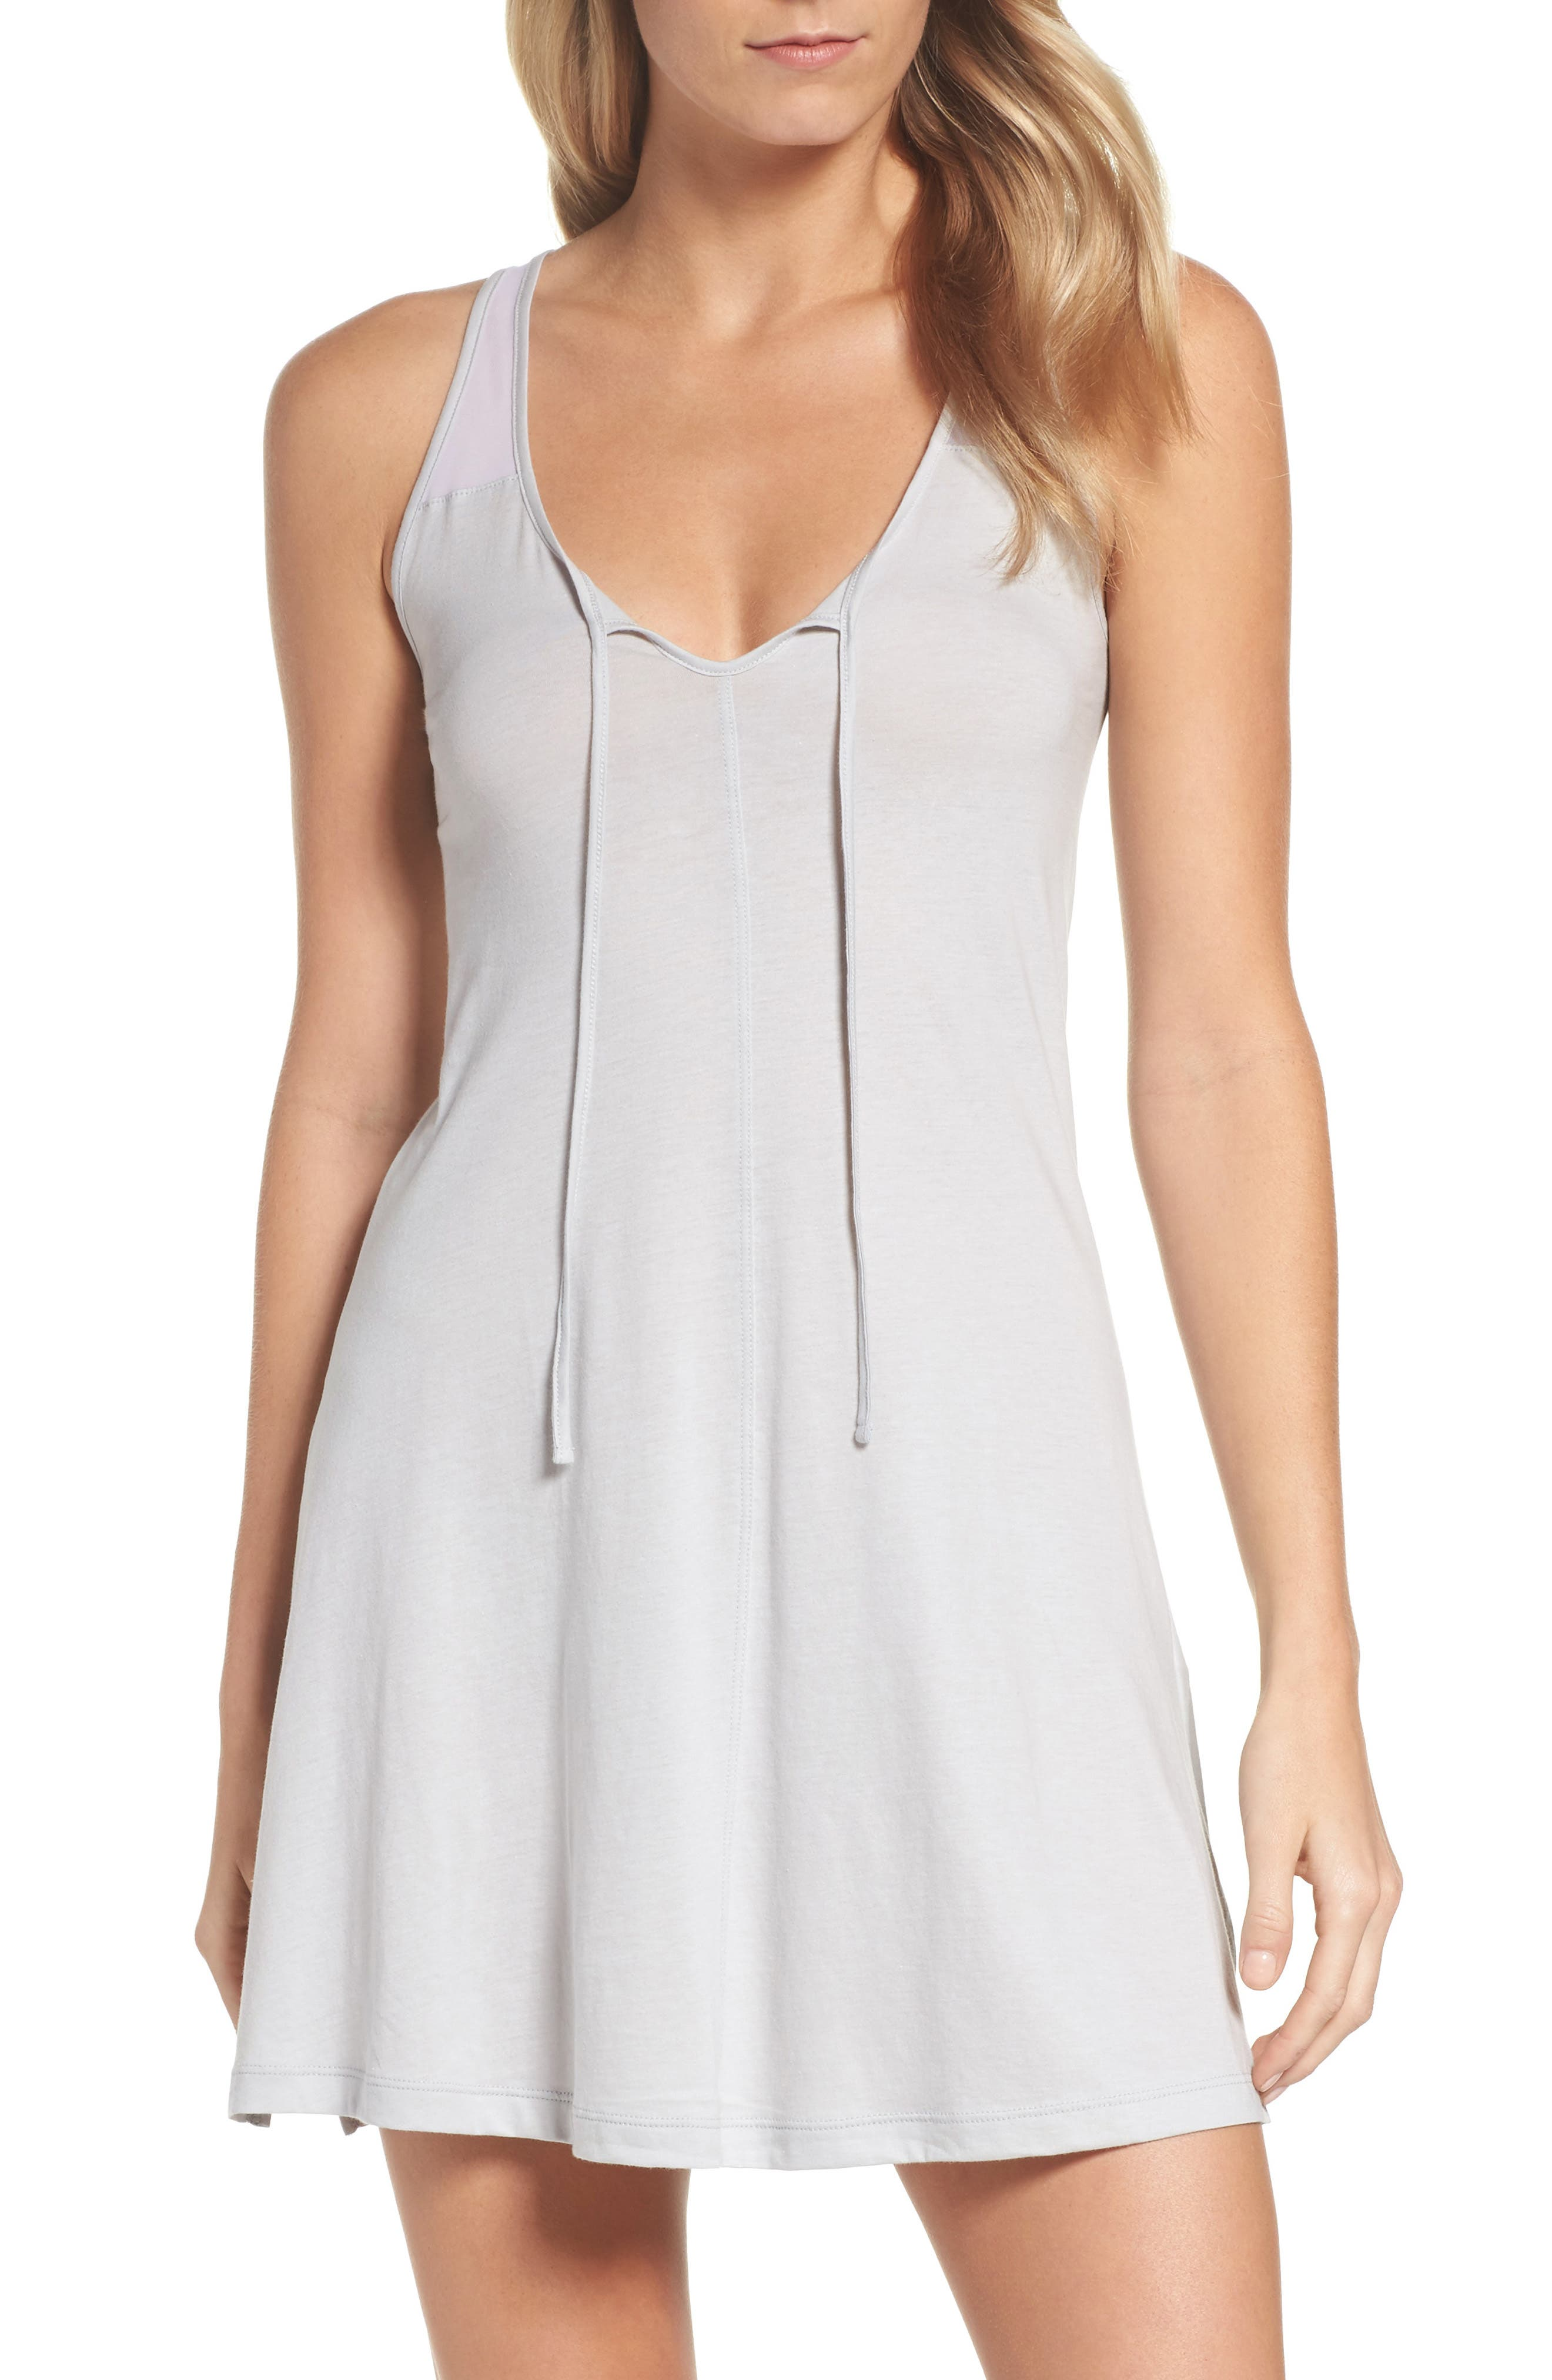 NAKED Tie Neck Chemise in Soft Gray